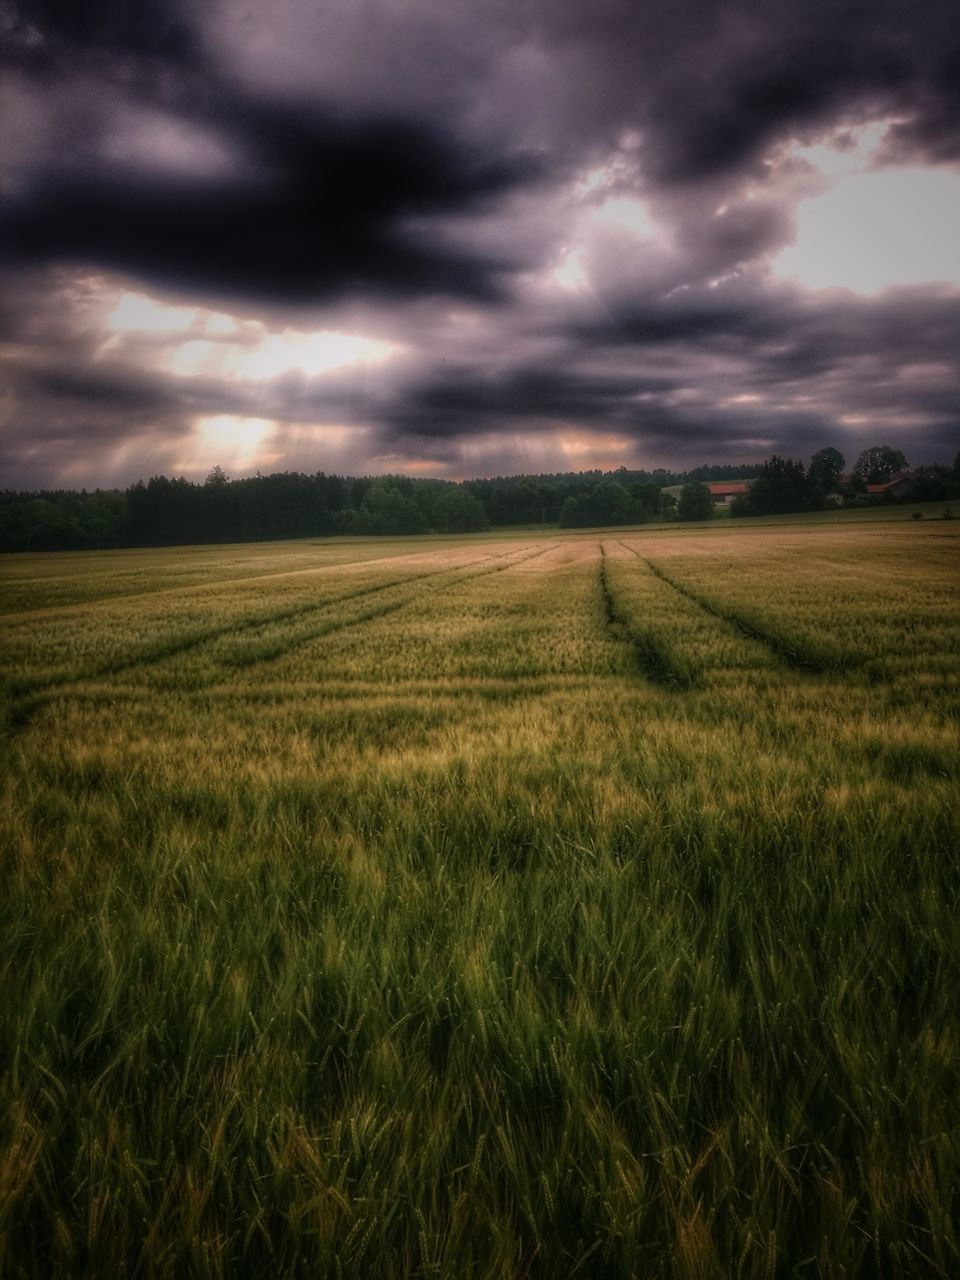 field, agriculture, landscape, tranquil scene, rural scene, nature, tranquility, crop, beauty in nature, farm, sky, scenics, cloud - sky, growth, cultivated land, no people, outdoors, storm cloud, green color, day, cereal plant, tree, grass